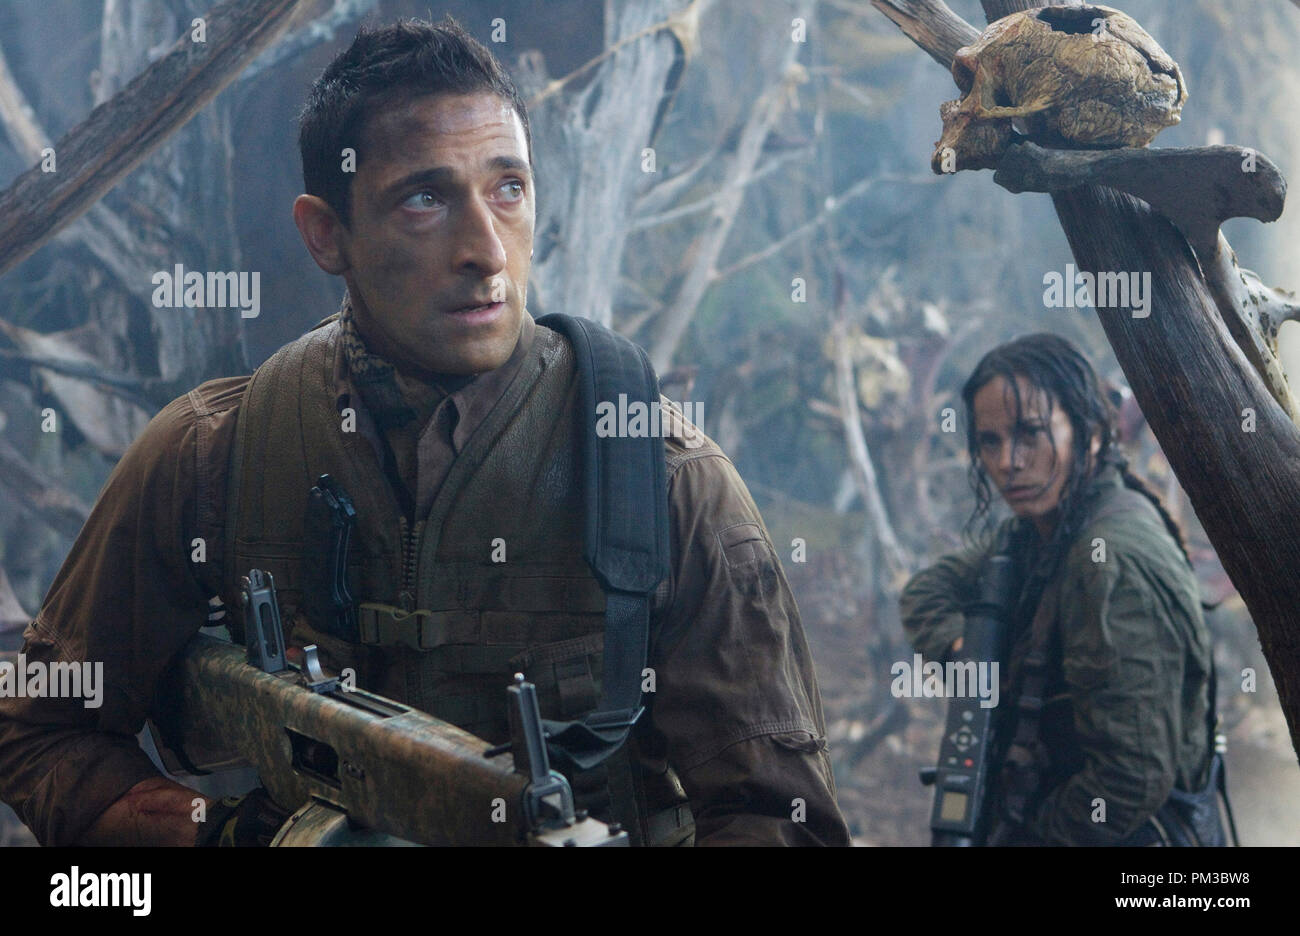 In an alien game preserve, Royce (Adrien Brody) and Isabelle (Alice Braga) discover theyÕre the game. - Stock Image